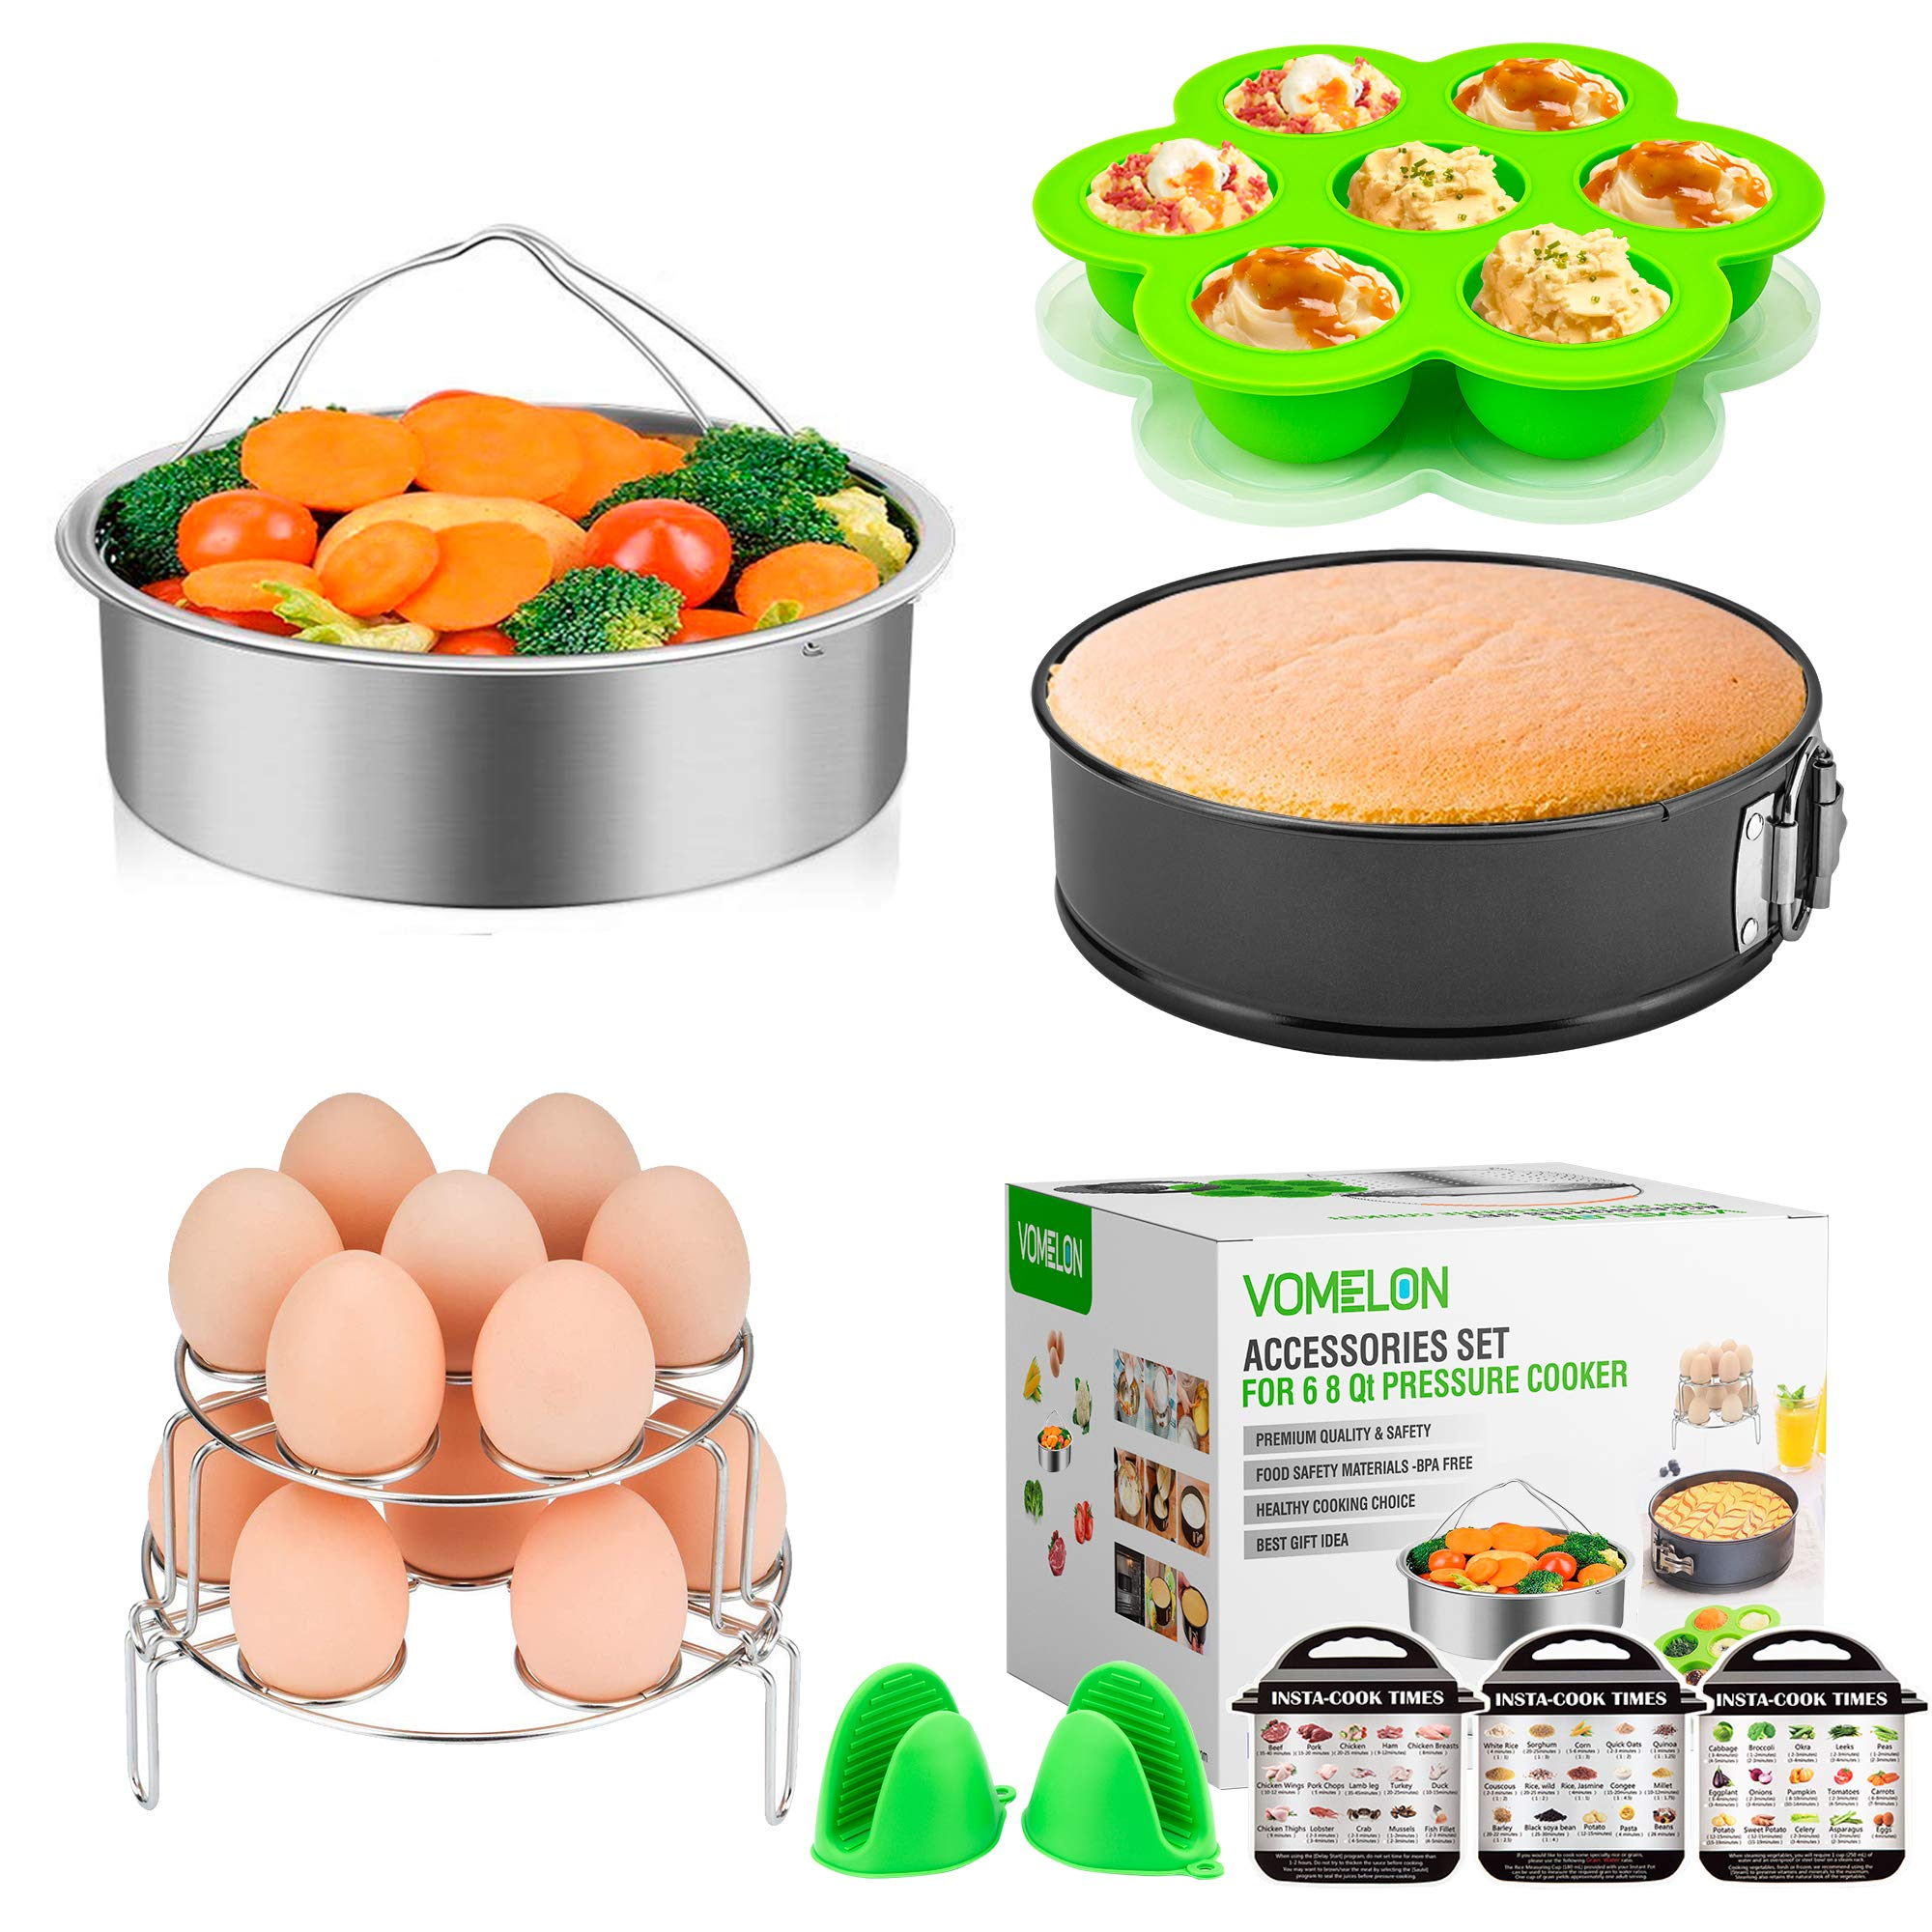 Cooking Accessories Compatible with Instant Pot 6,8 Qt, 10-Piece Steamer Basket, Egg Bites Mold,7'' Springfrom Pan,Egg Steamer Racks,Magnetic Cheat Sheets and Oven Mitts Bonus Recipes Ebook by Vomelon